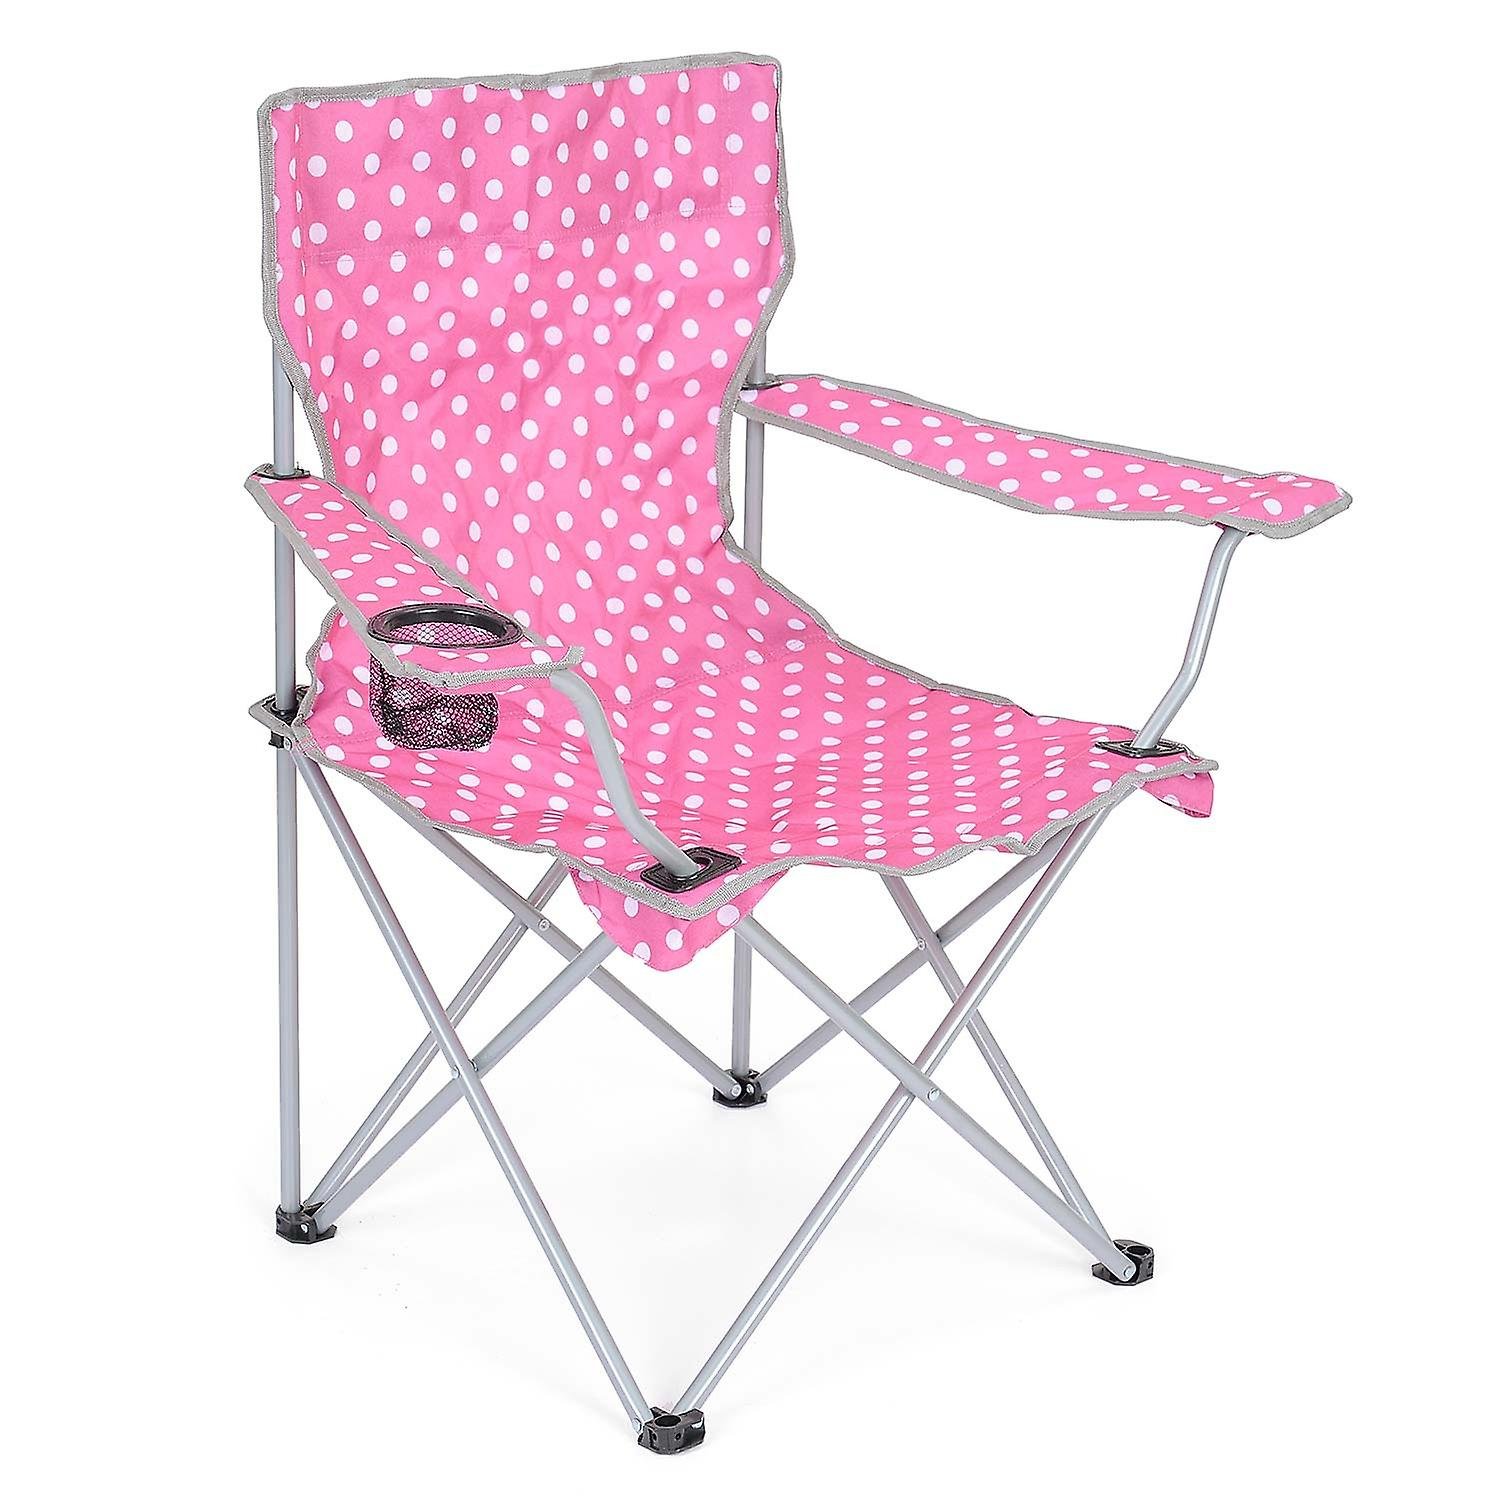 festival folding chair wedding covers hire melbourne camping lightweight beach outdoor travel seat polka dot